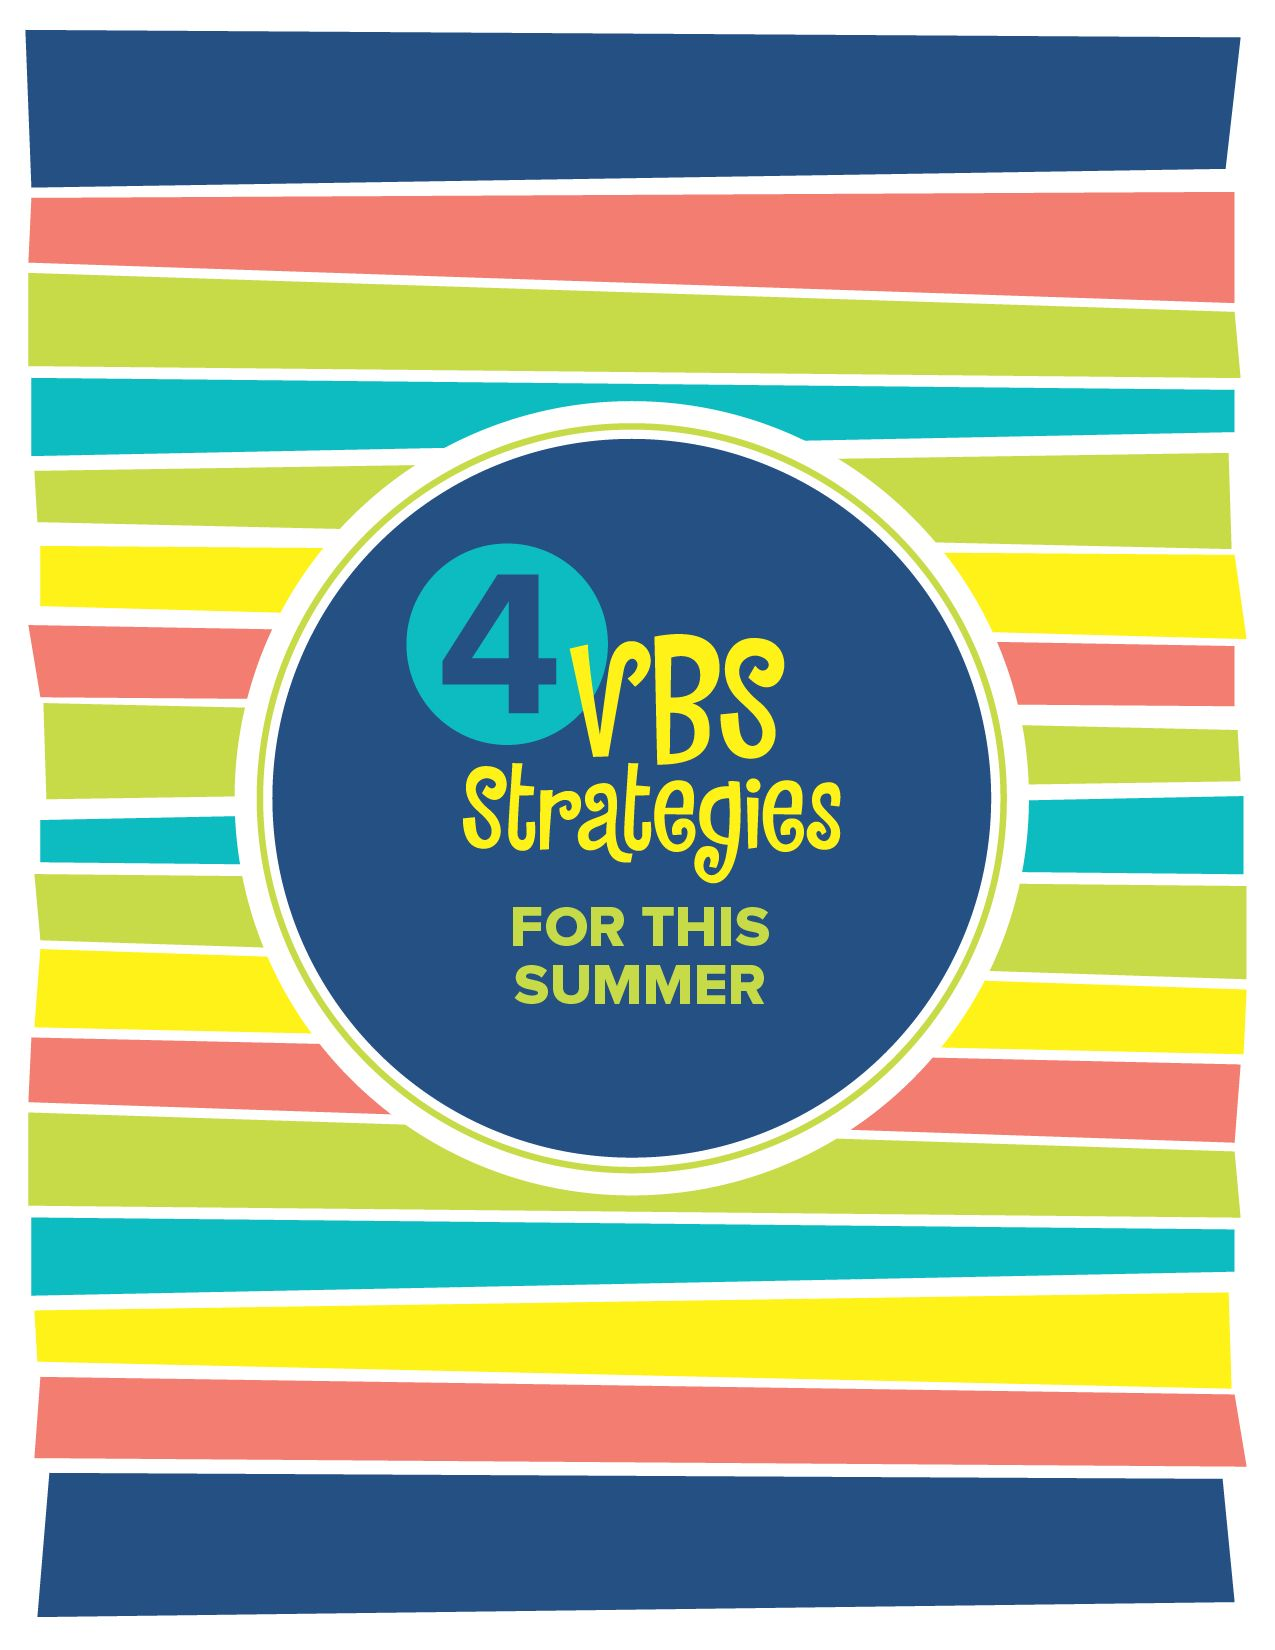 4 VBS Strategies for This Summer